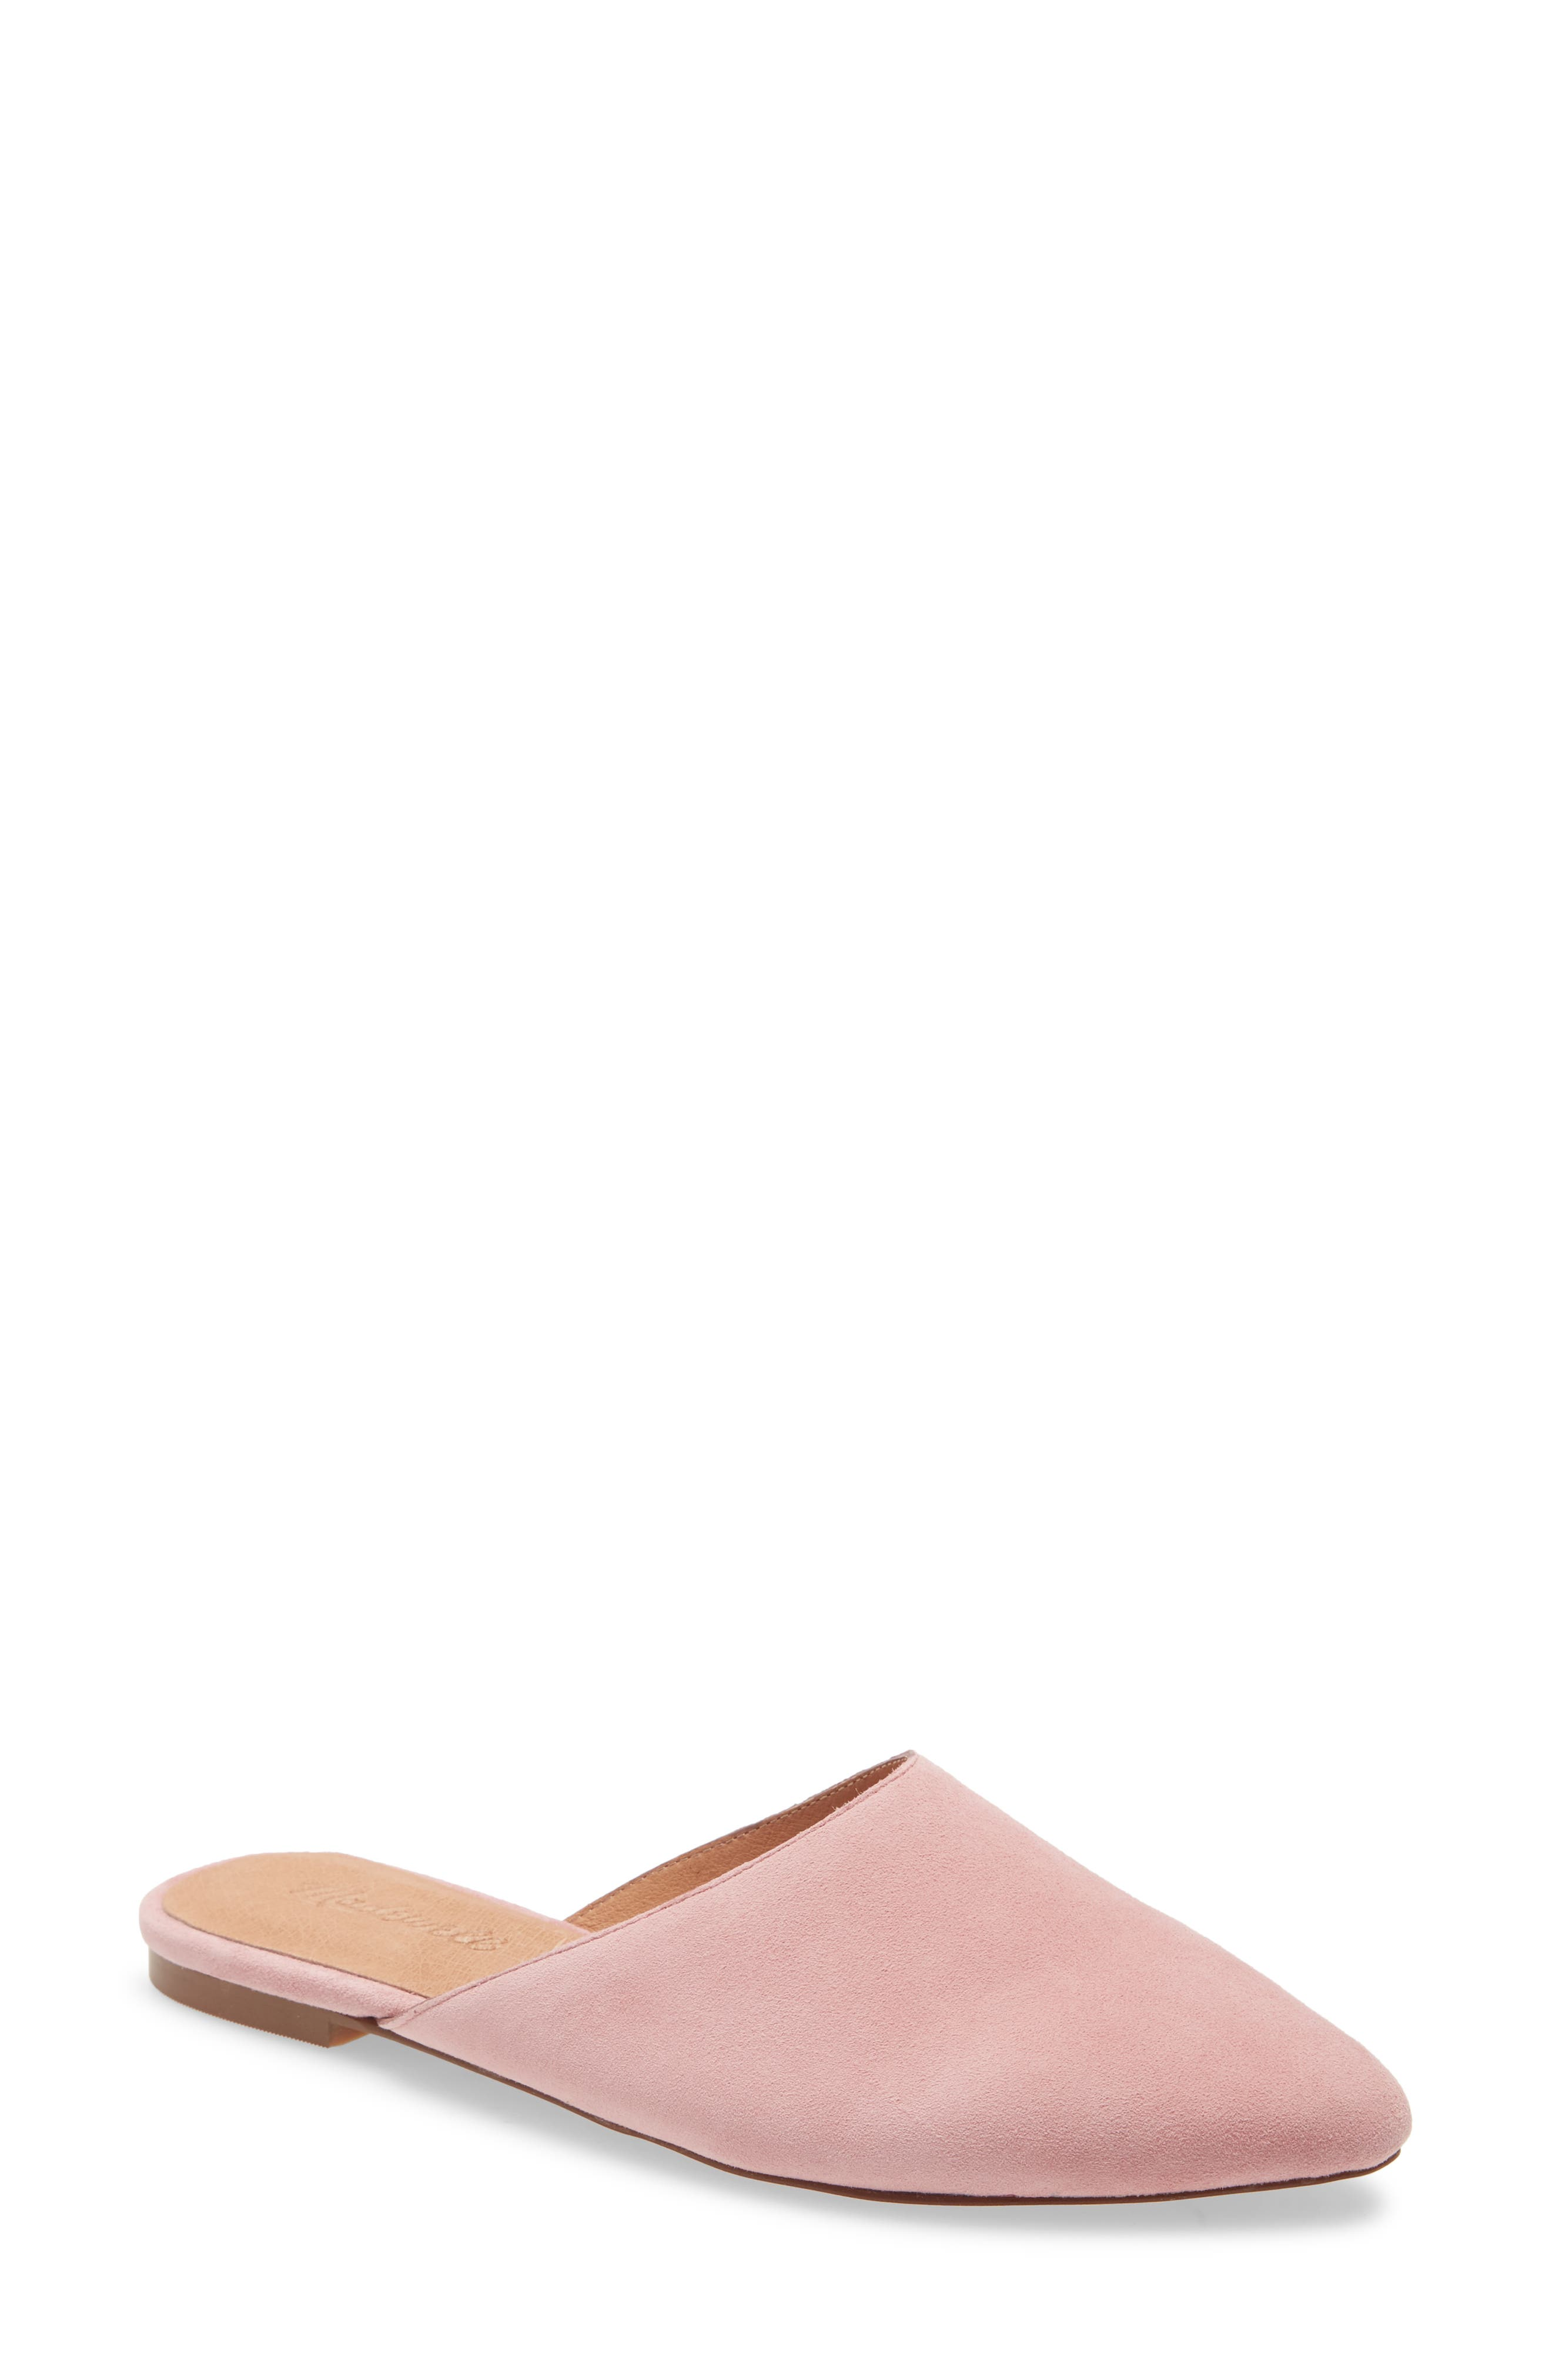 Women's Madewell Shoes | Nordstrom